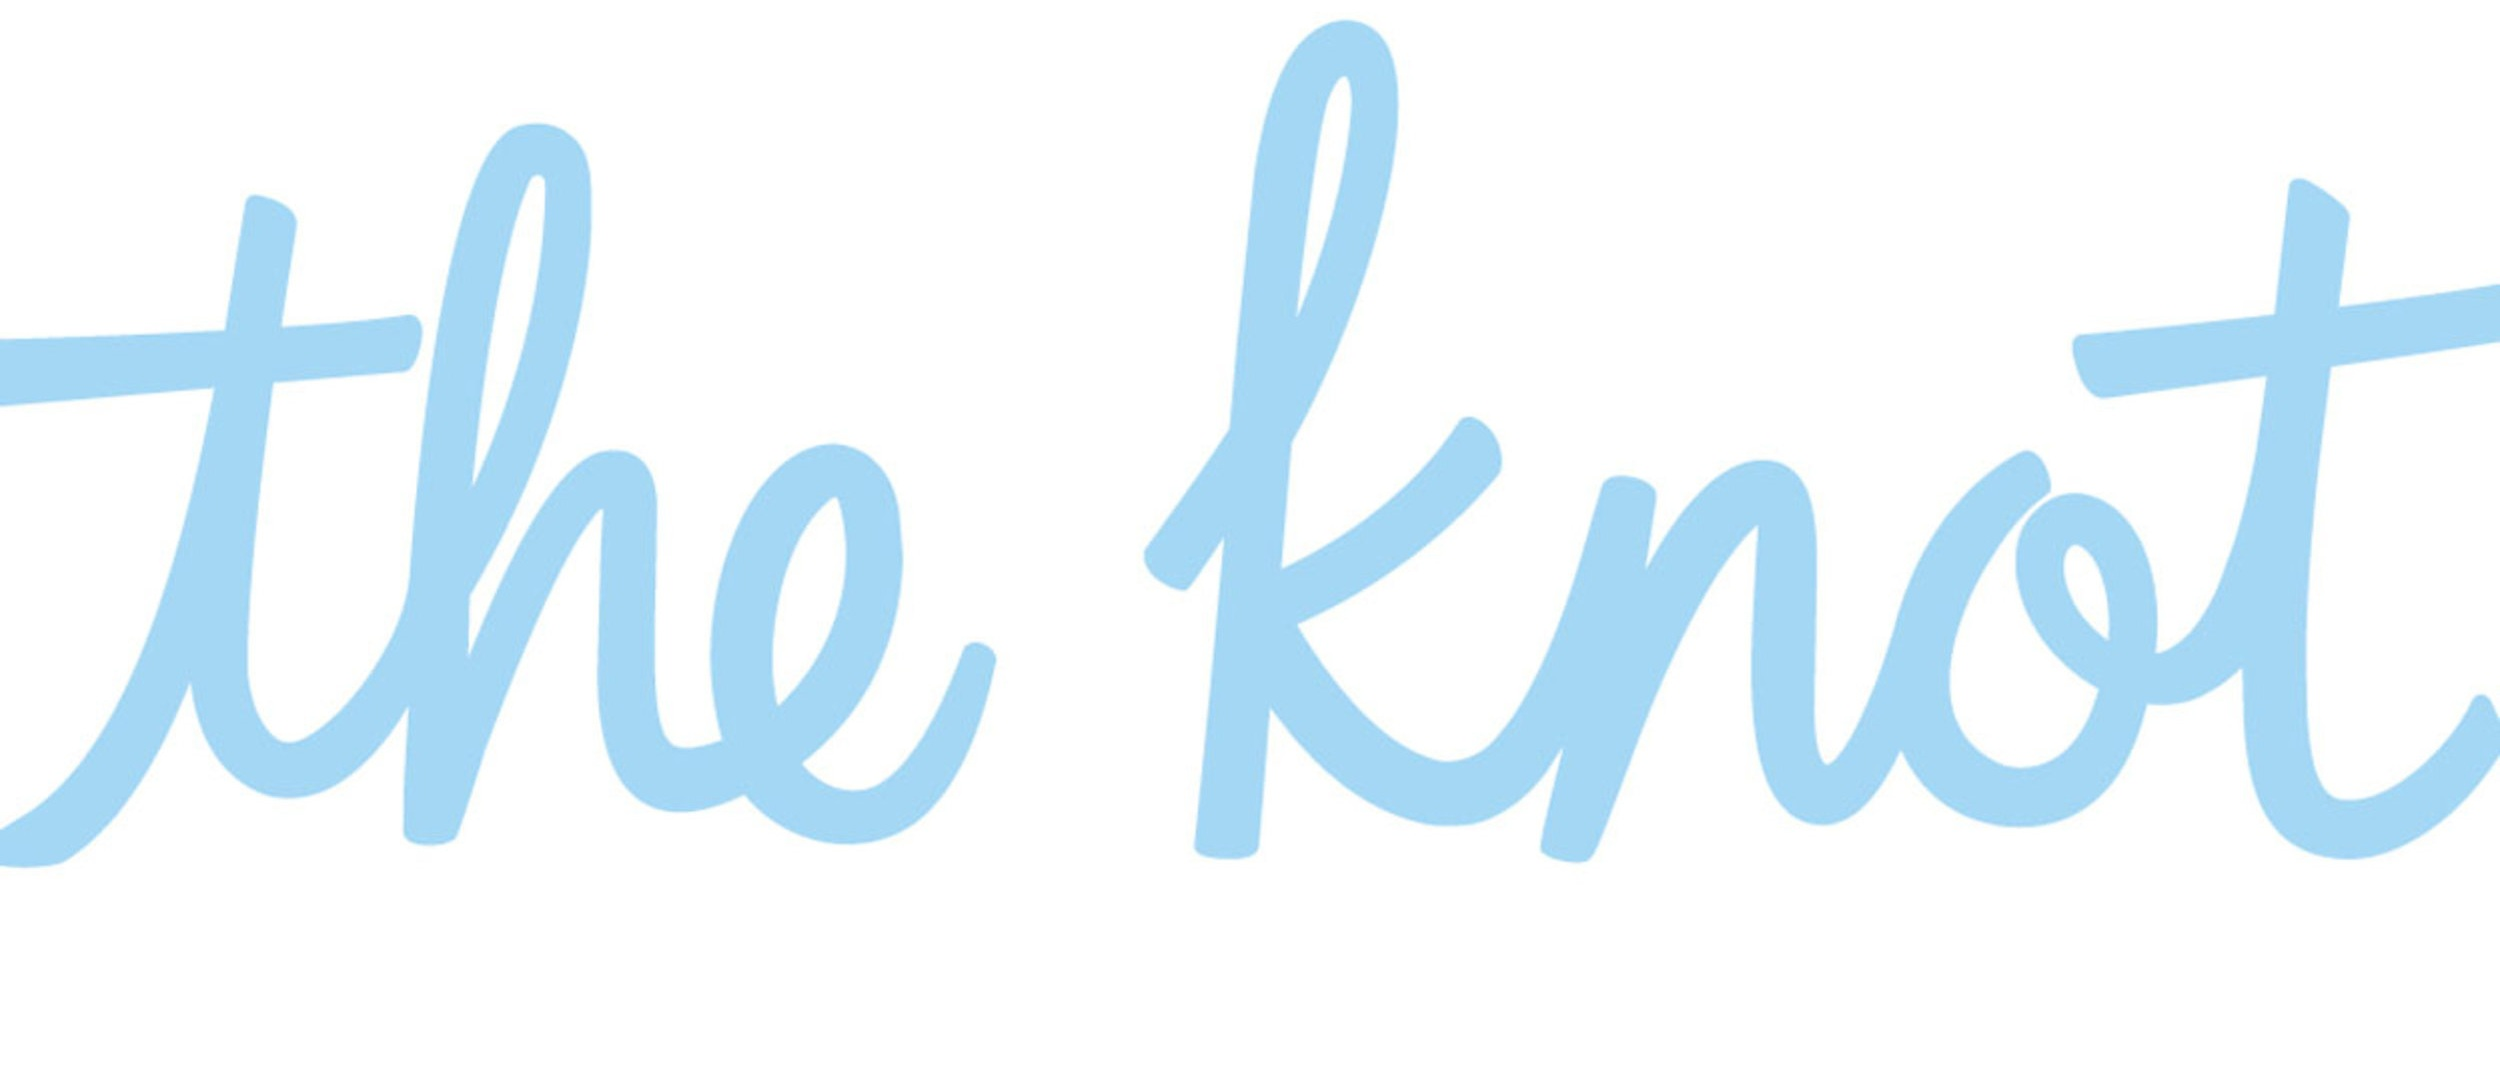 The Knot - An American media and technology company that provides content, tools, products and services for couples who are planning weddings, creating a home, and starting a family.